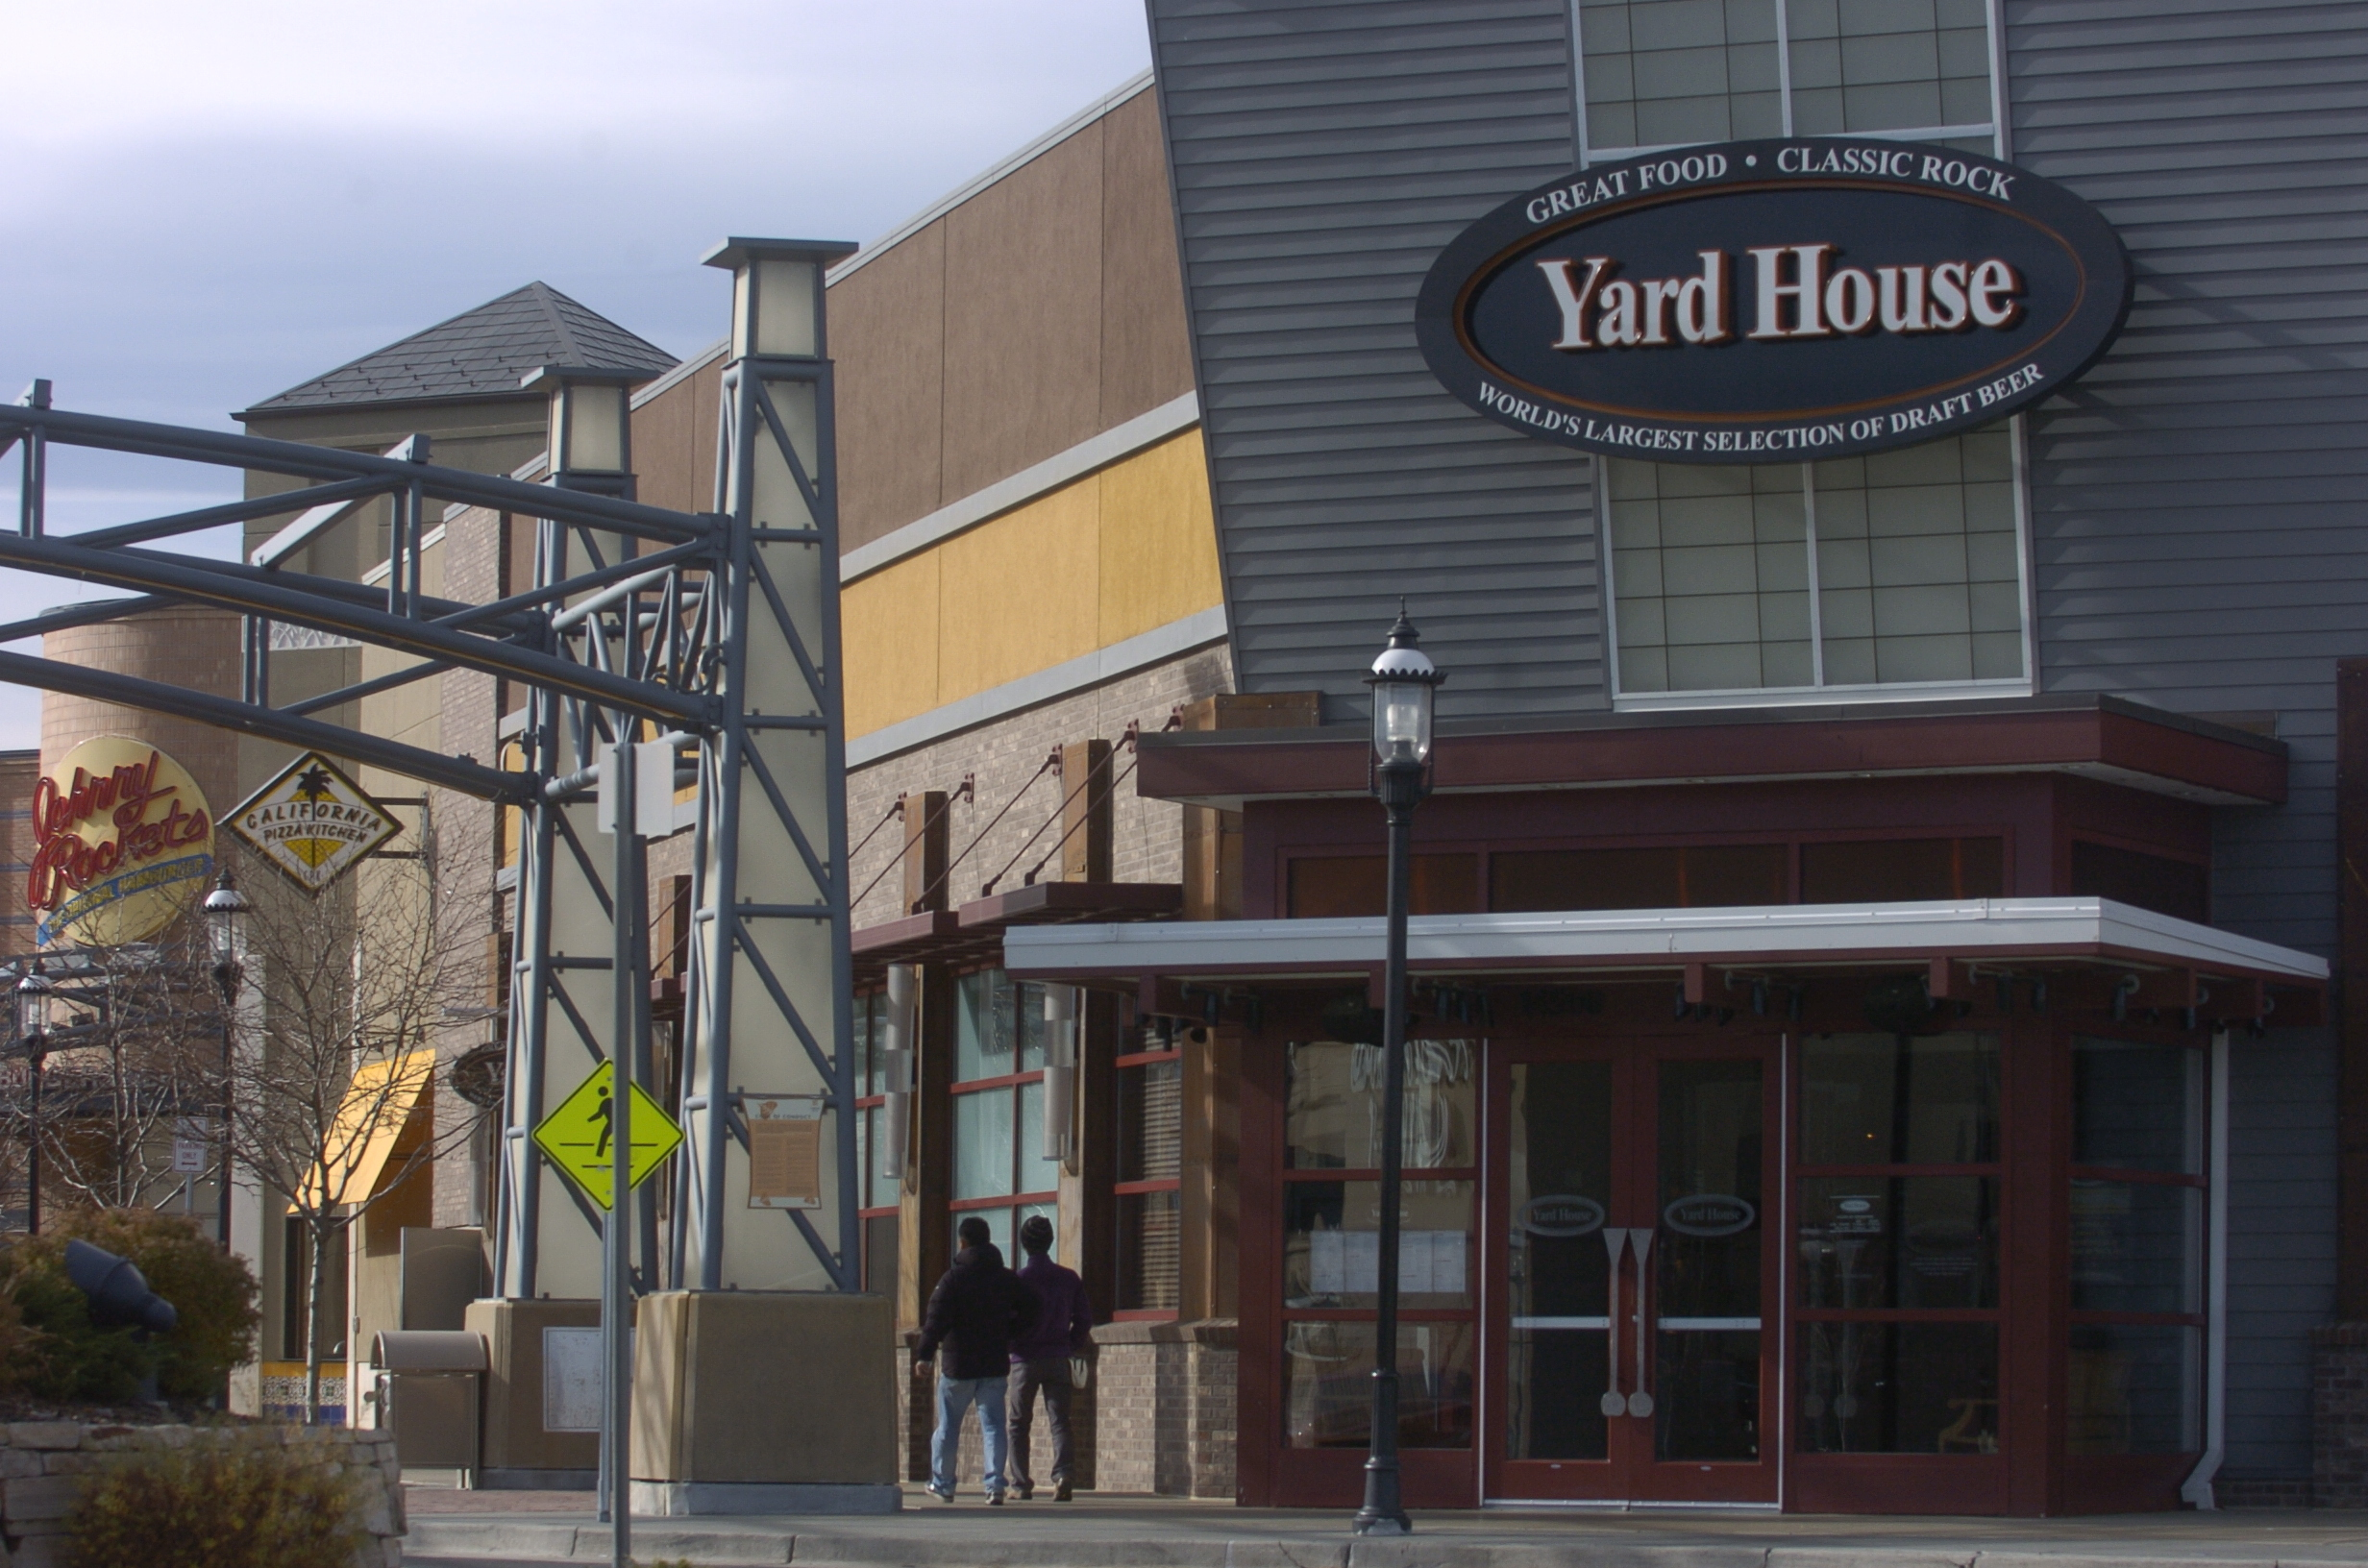 Backyard House Restaurant : bb) dining14bb1  Yard House restaurant and pub at Colorado Mills